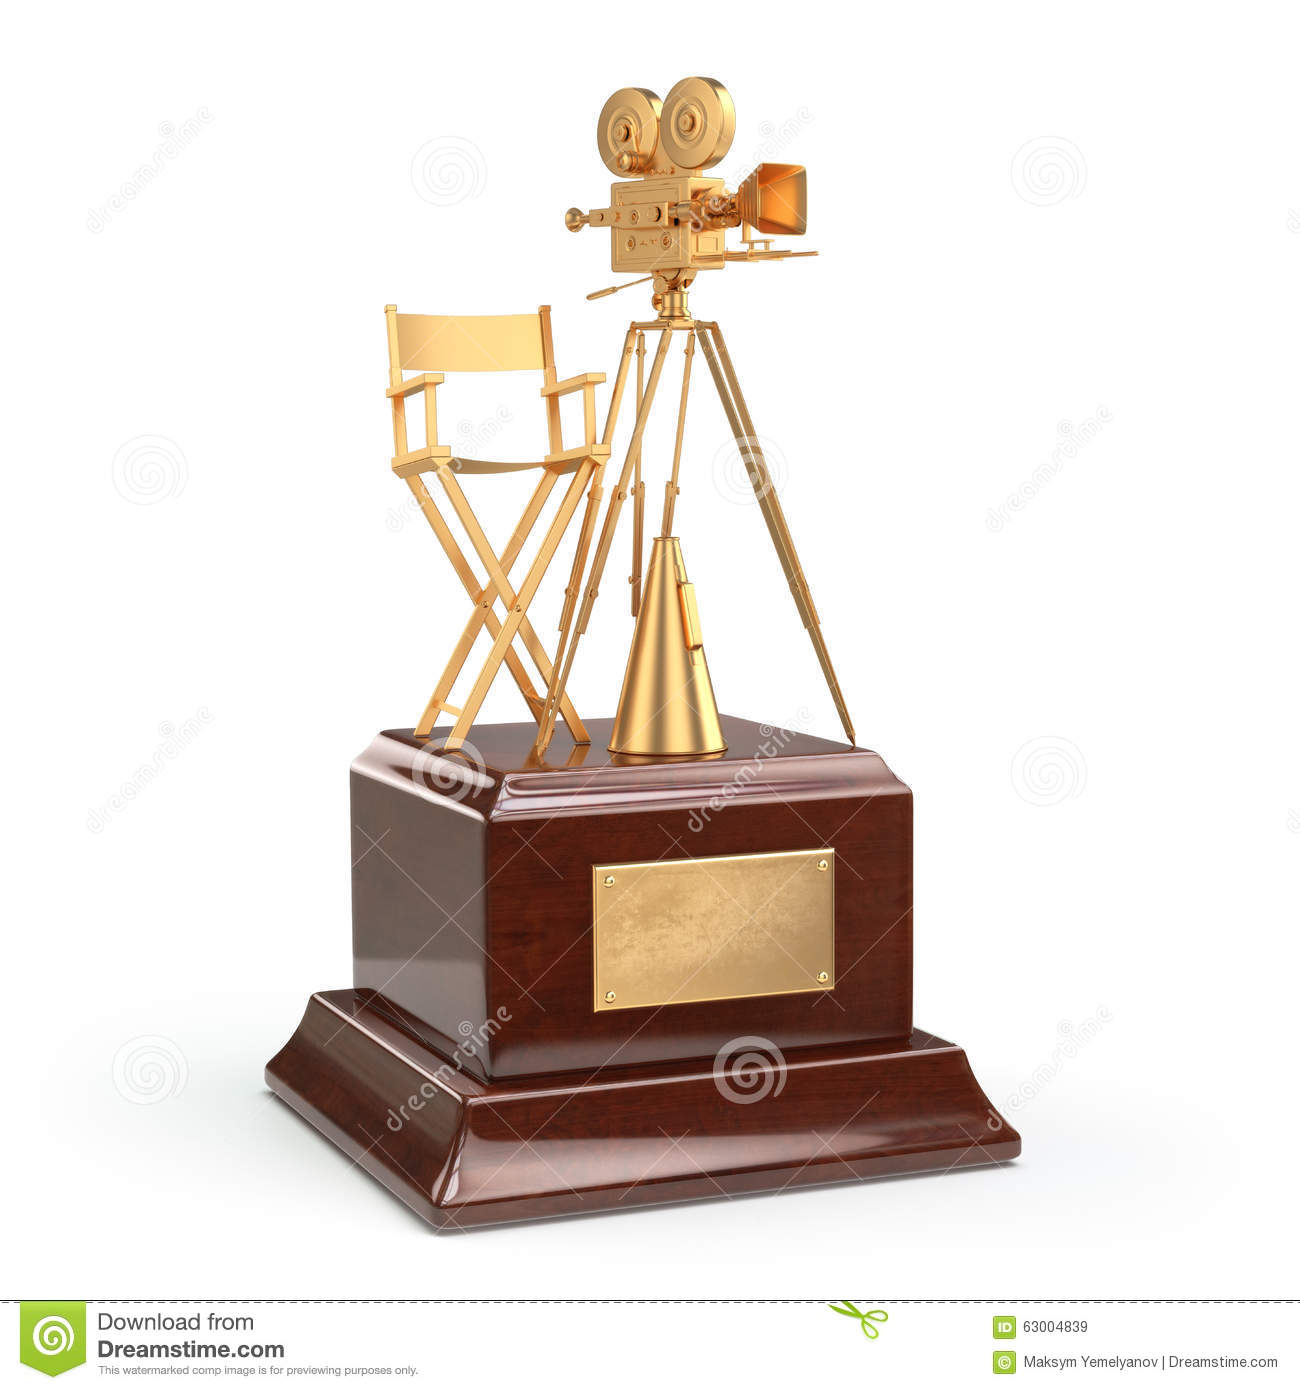 Award Ribbon Clipart in addition Global Indian Music Academy Awards together with The Golden Phone Award For When He further Stock Illustration Film Award Gold Vintage Movie Camera Chair Director D Image63004839 also 20933. on academy award trophy